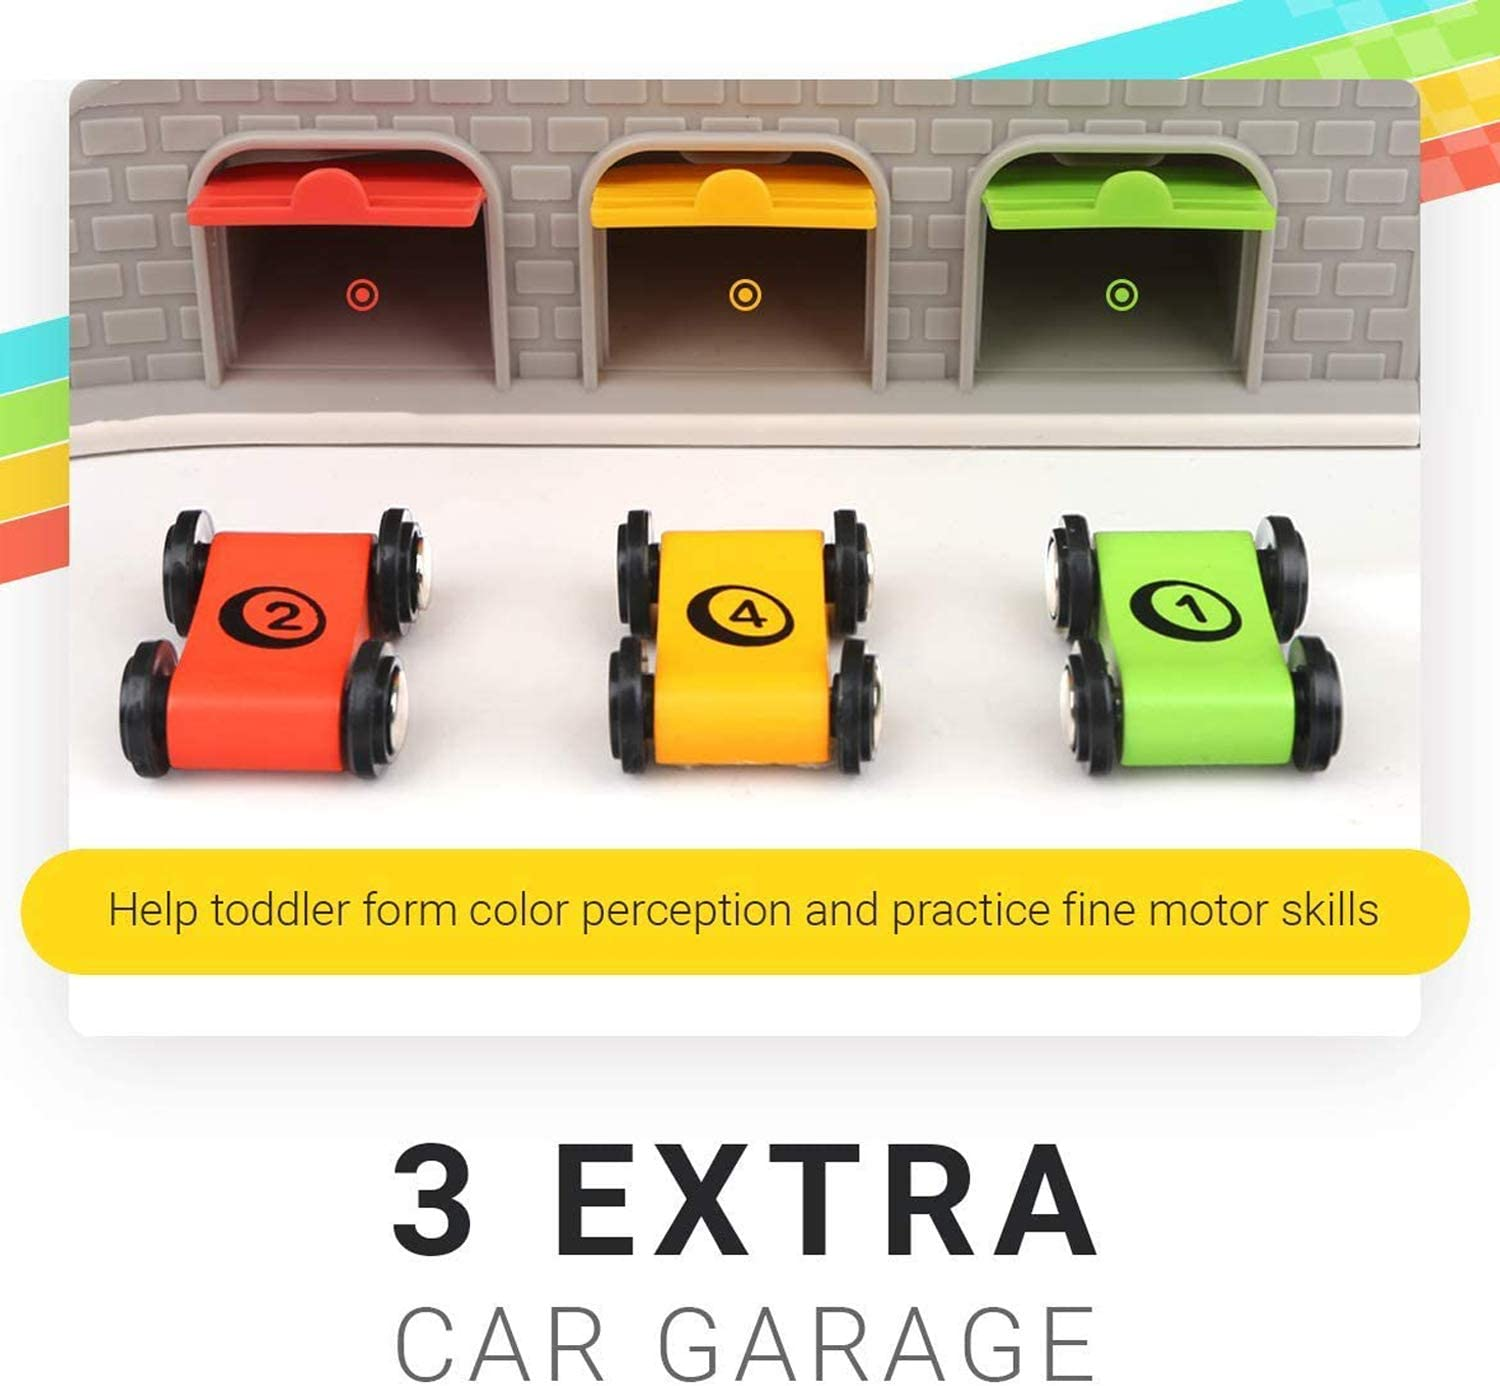 Garage Colourful and Fun Wood Educational Race Car Track Parking Lot TOP BRIGHT Toddler Car Track with 4 Mini Cars Toy Car for 1 2 Year Old Gas Station